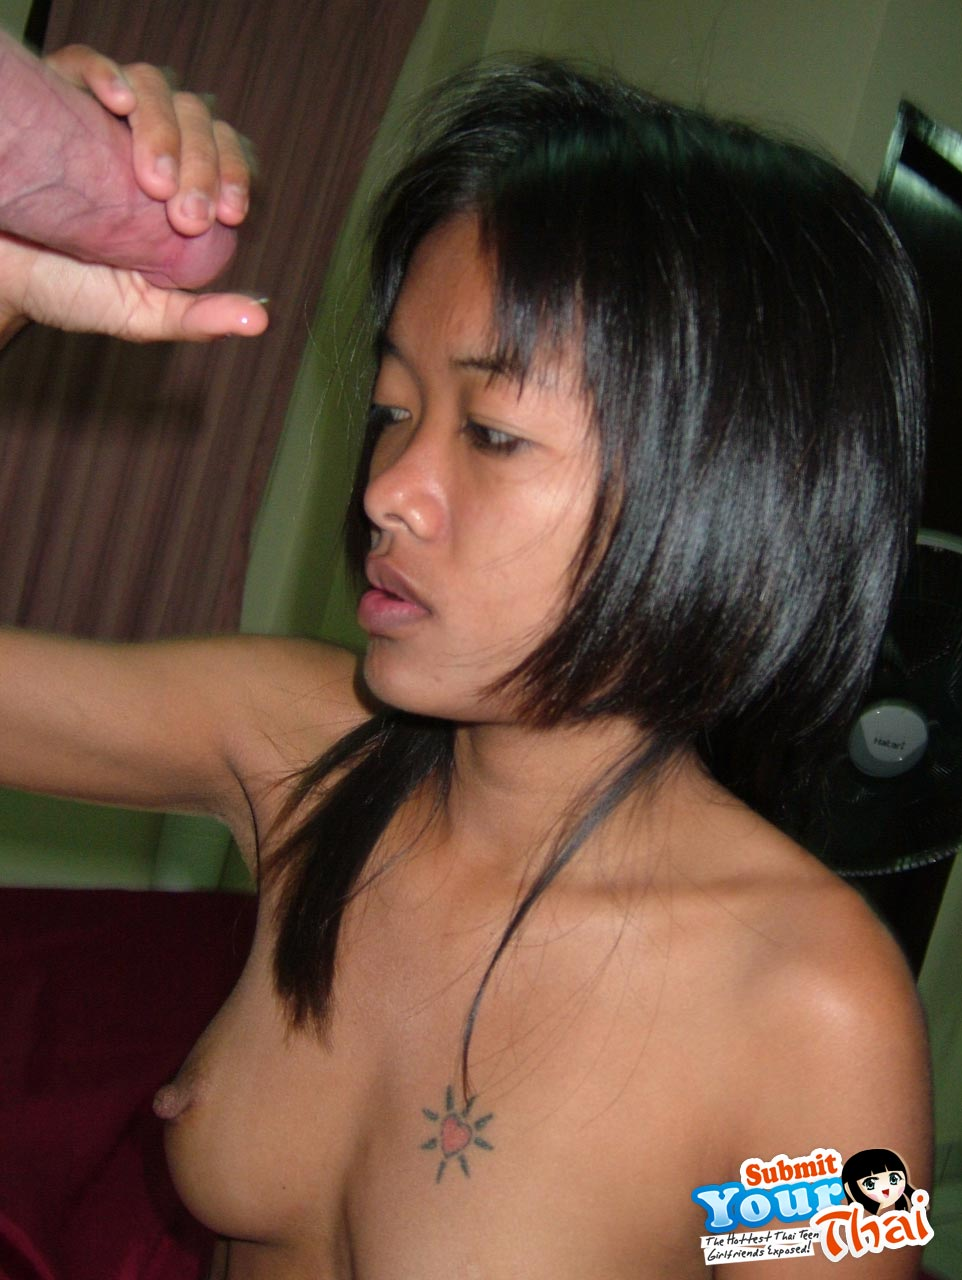 White slut anal toyed by black bf with glass plug